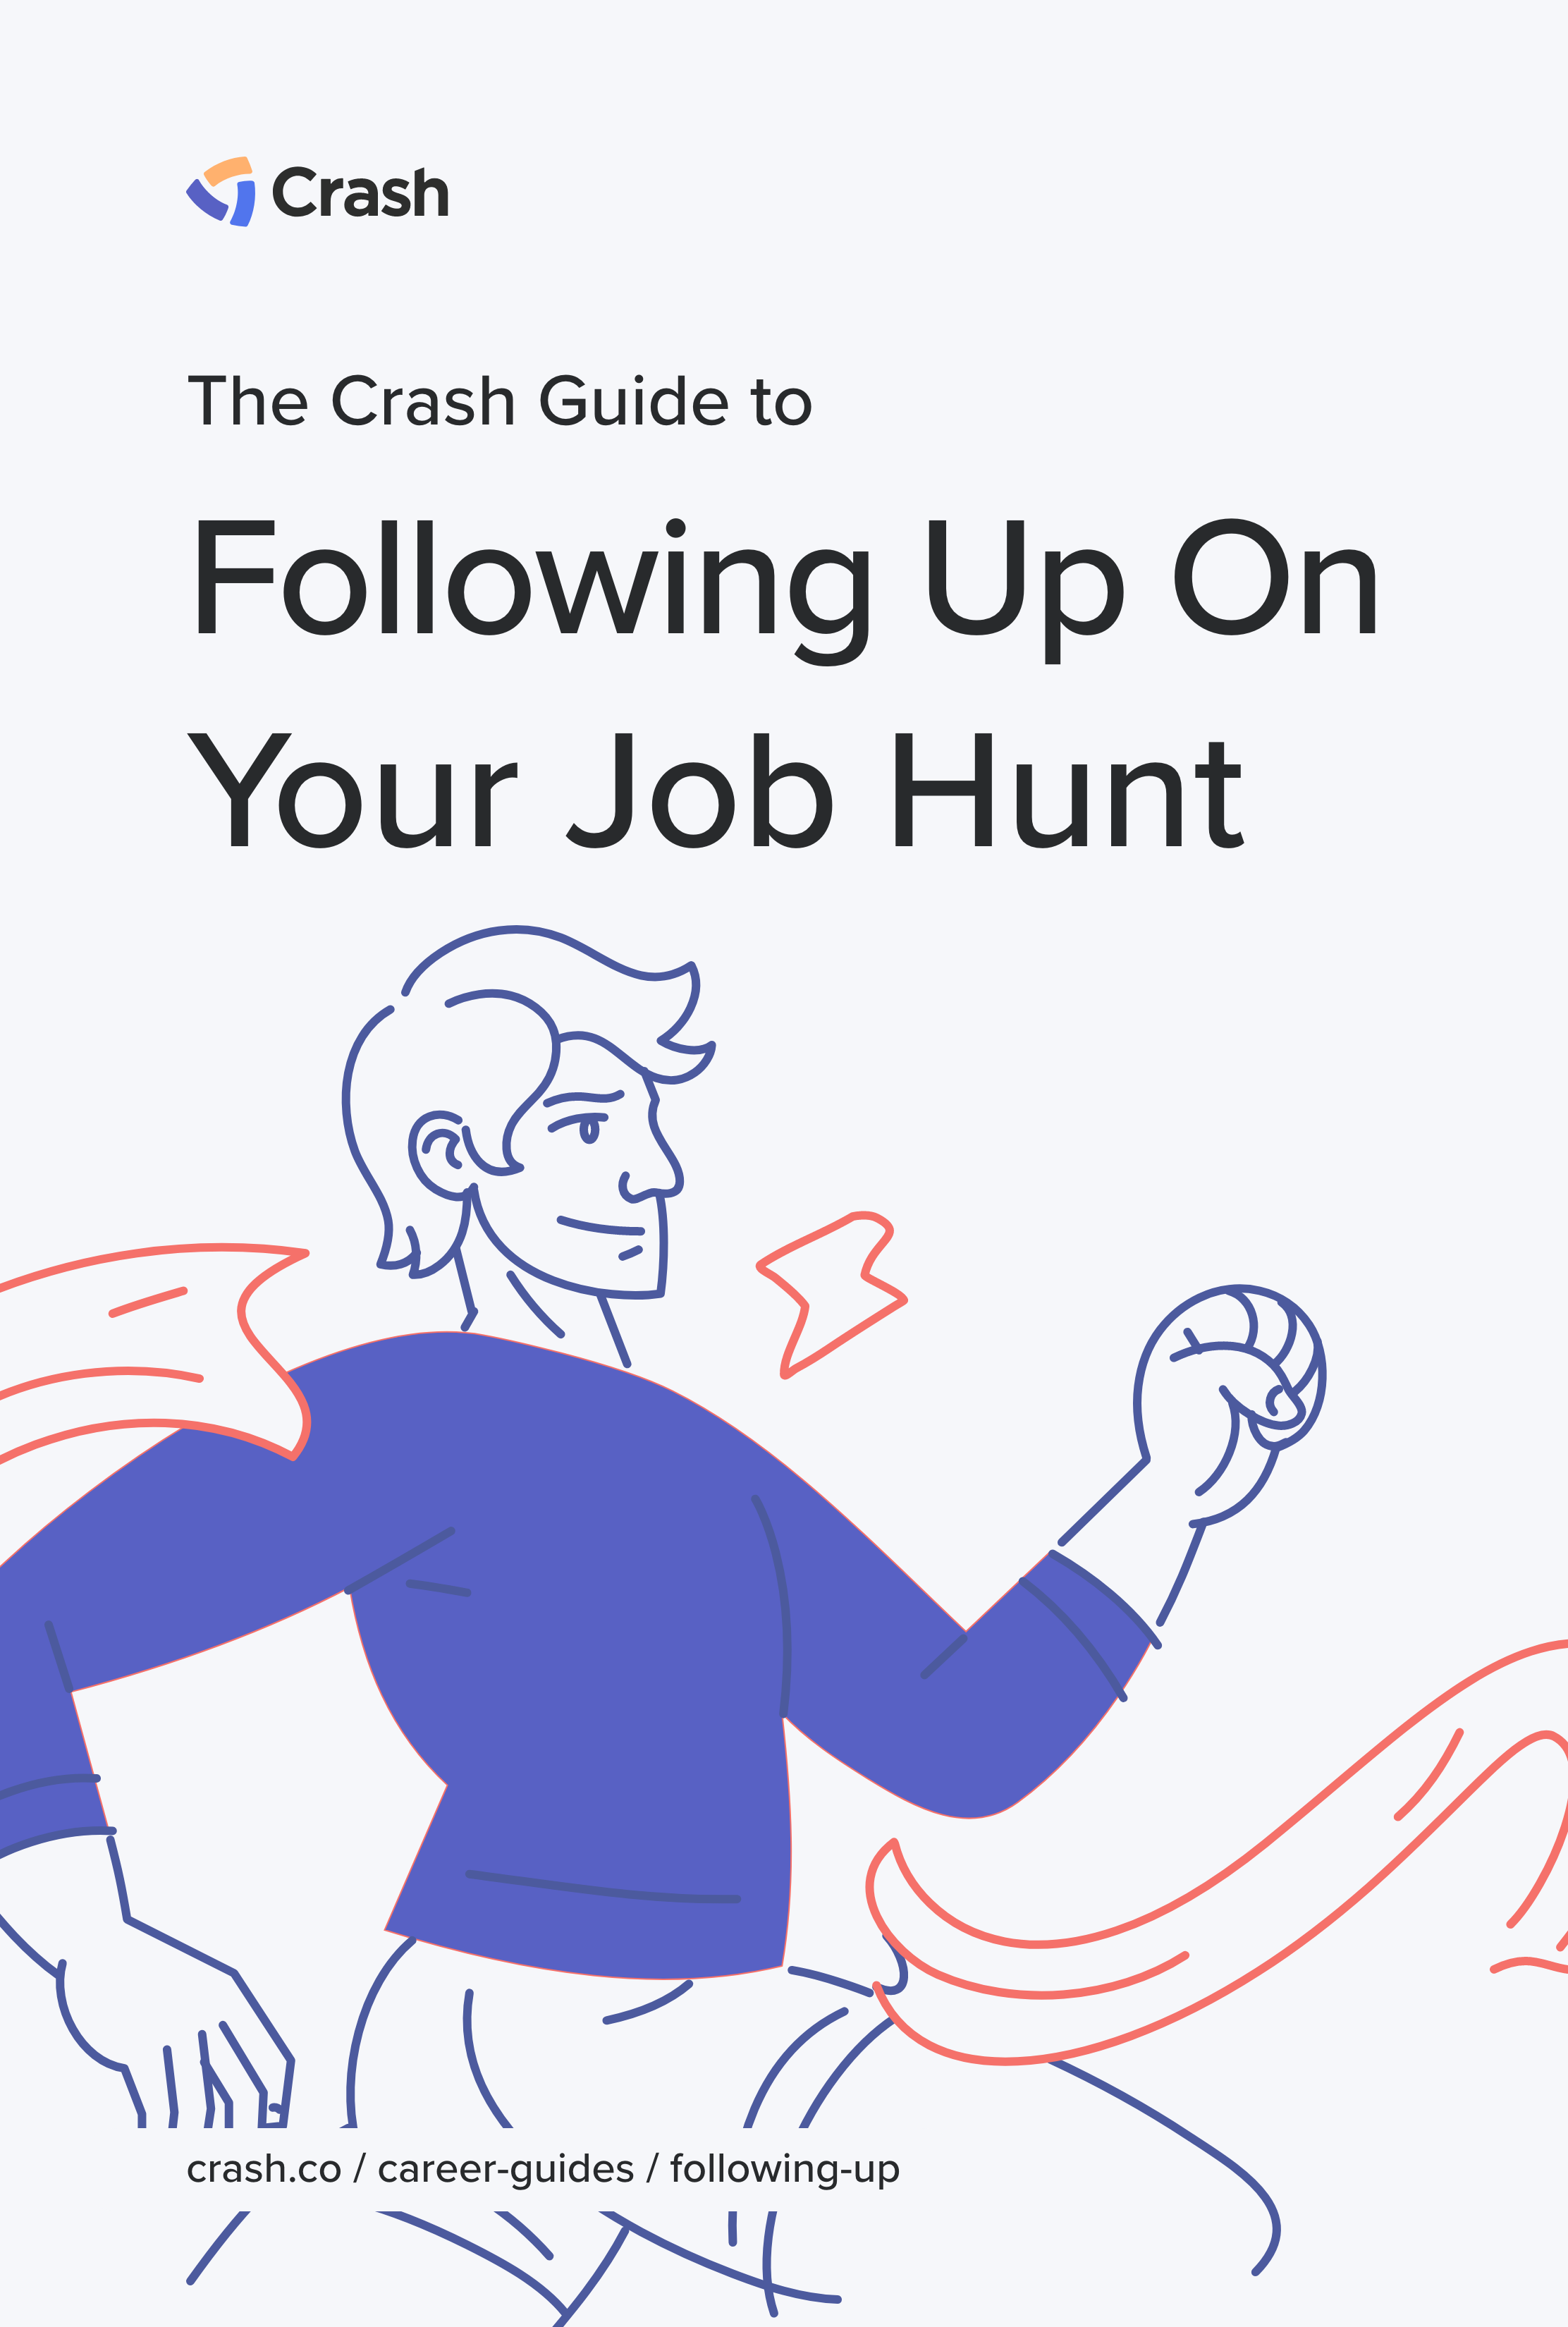 following up job hunt crash career guide cover image